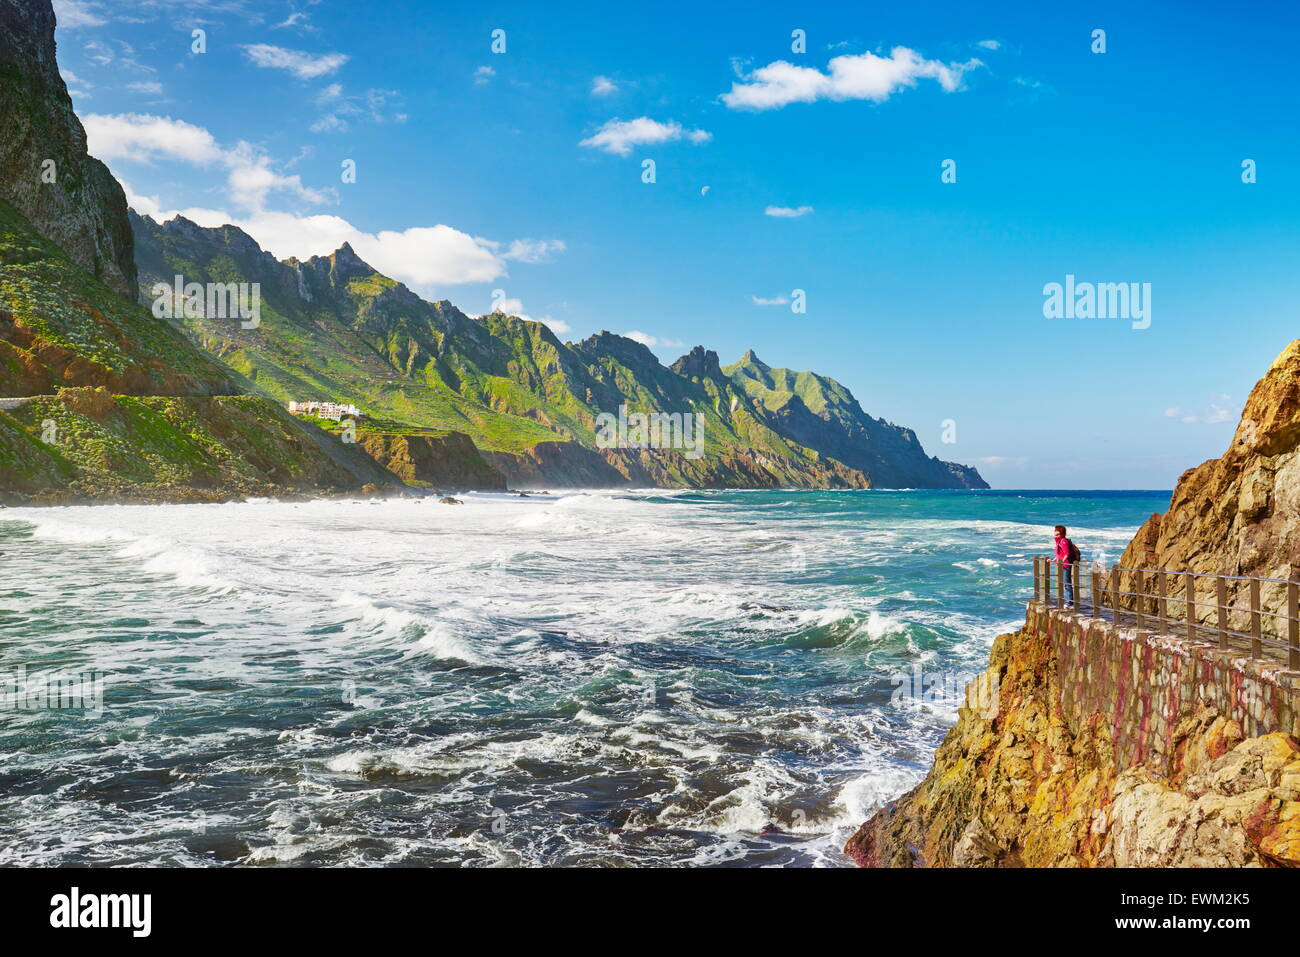 Almaciga, Taganana Coast, Tenerife, Canary Islands, Spain - Stock Image